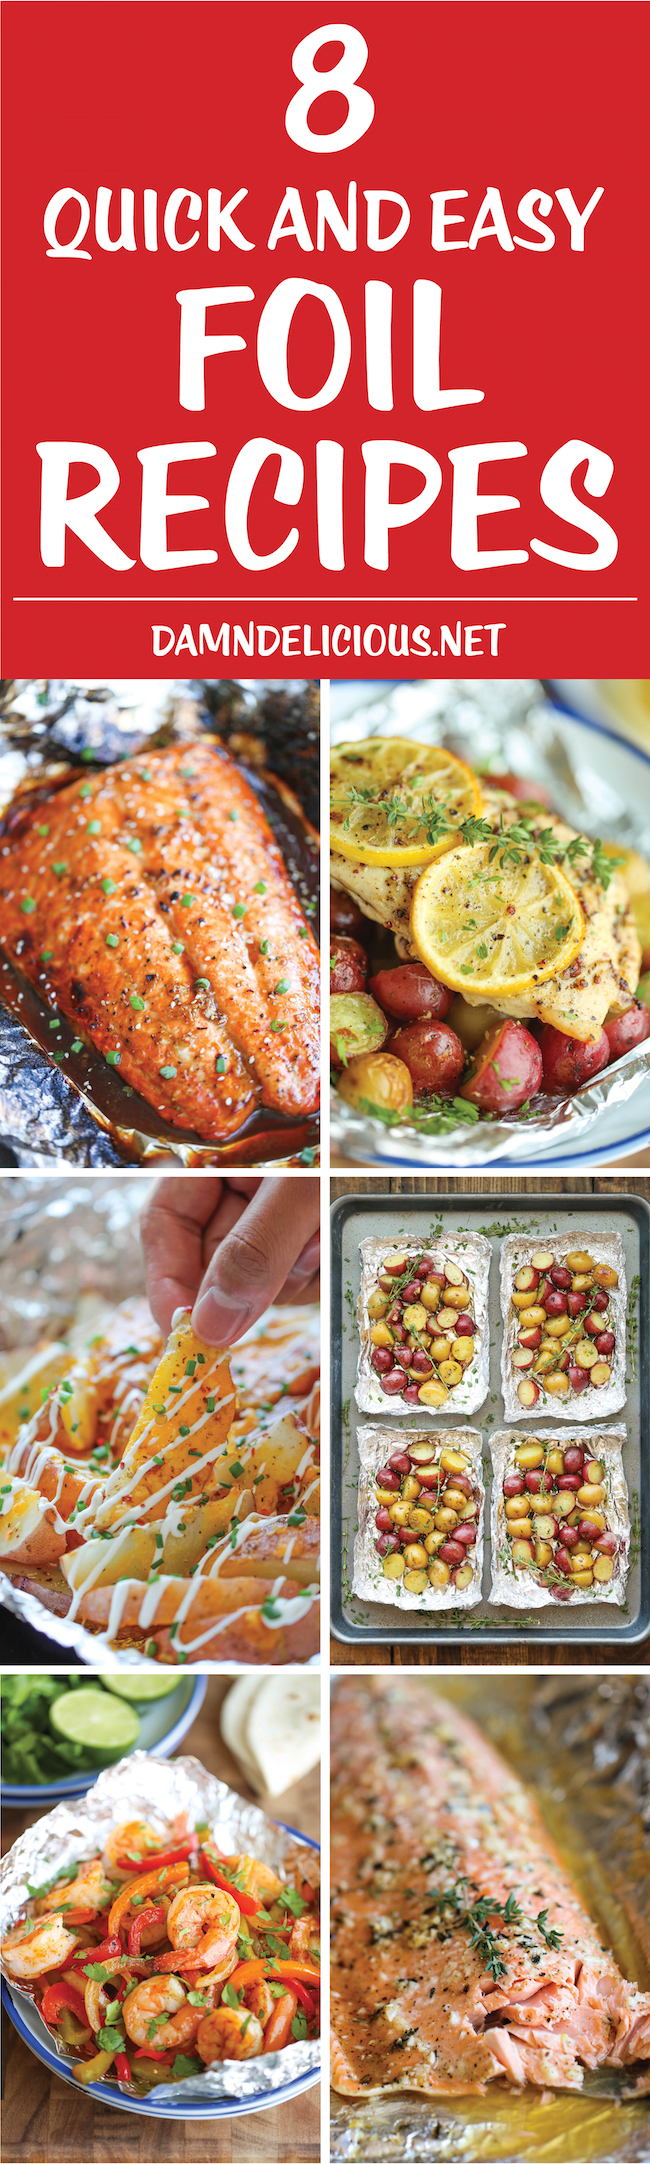 8 Quick And Easy Foil Recipes